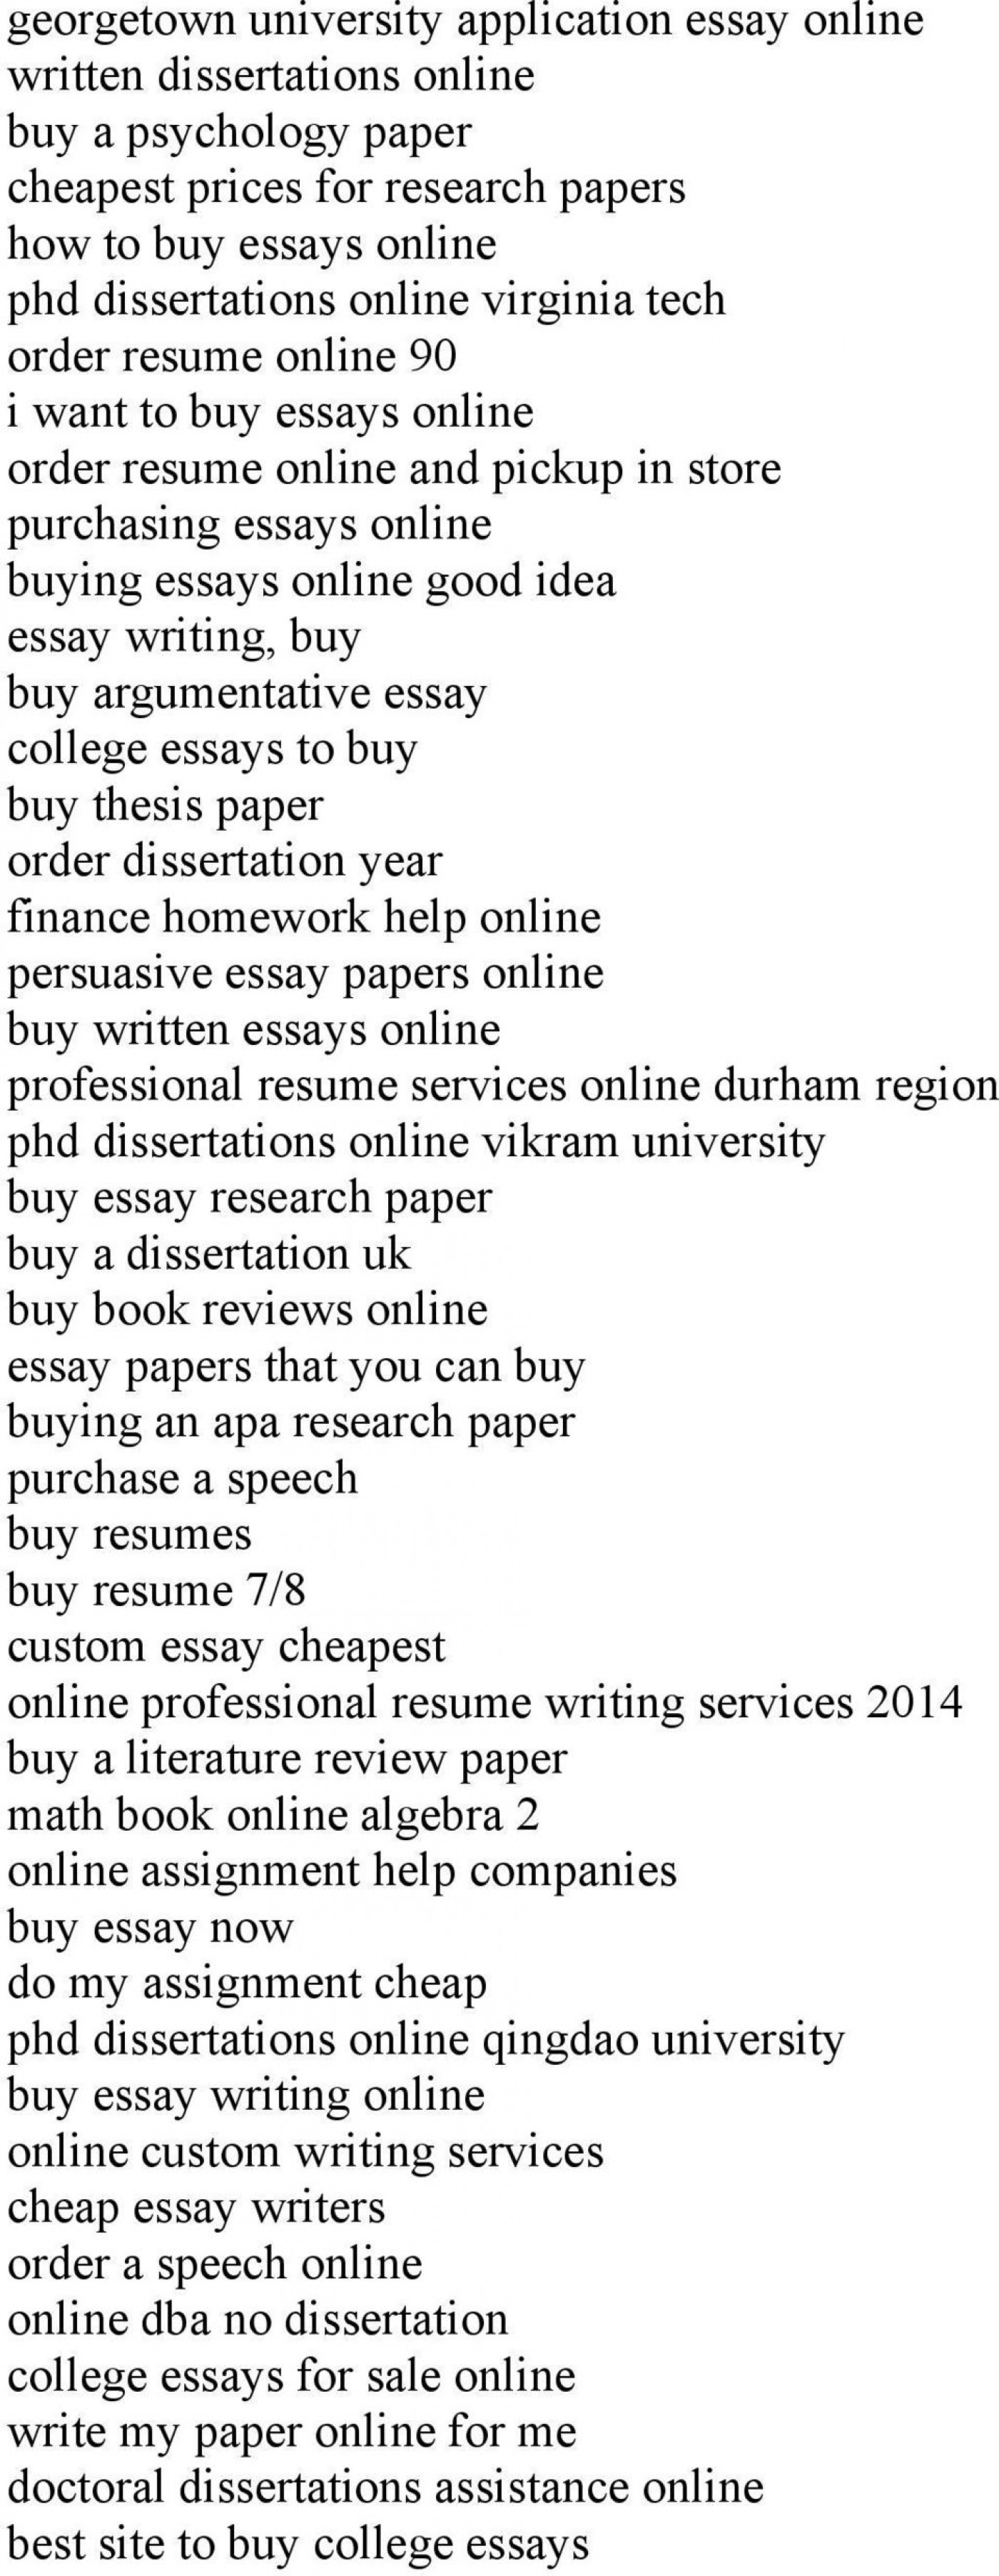 004 Research Paper Buying Page 4 Best A Behaviour Online Behavior Impulse Papers 1400